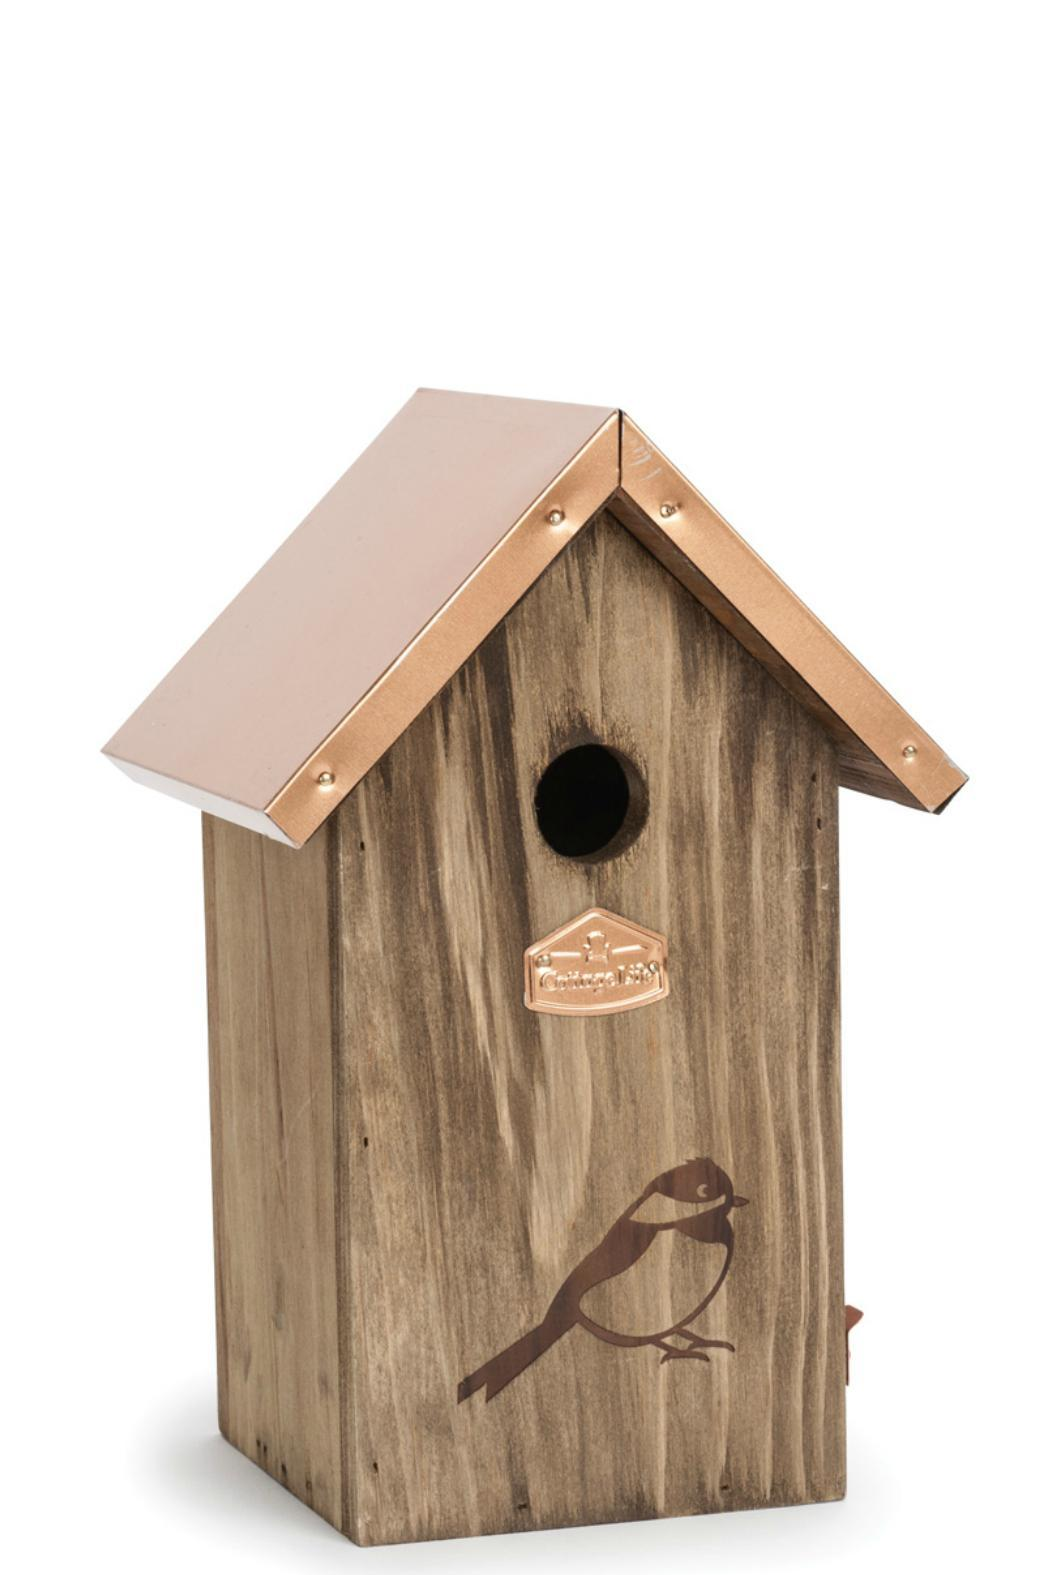 Abbott collection bird house from canada by mountain home for Bird home decor